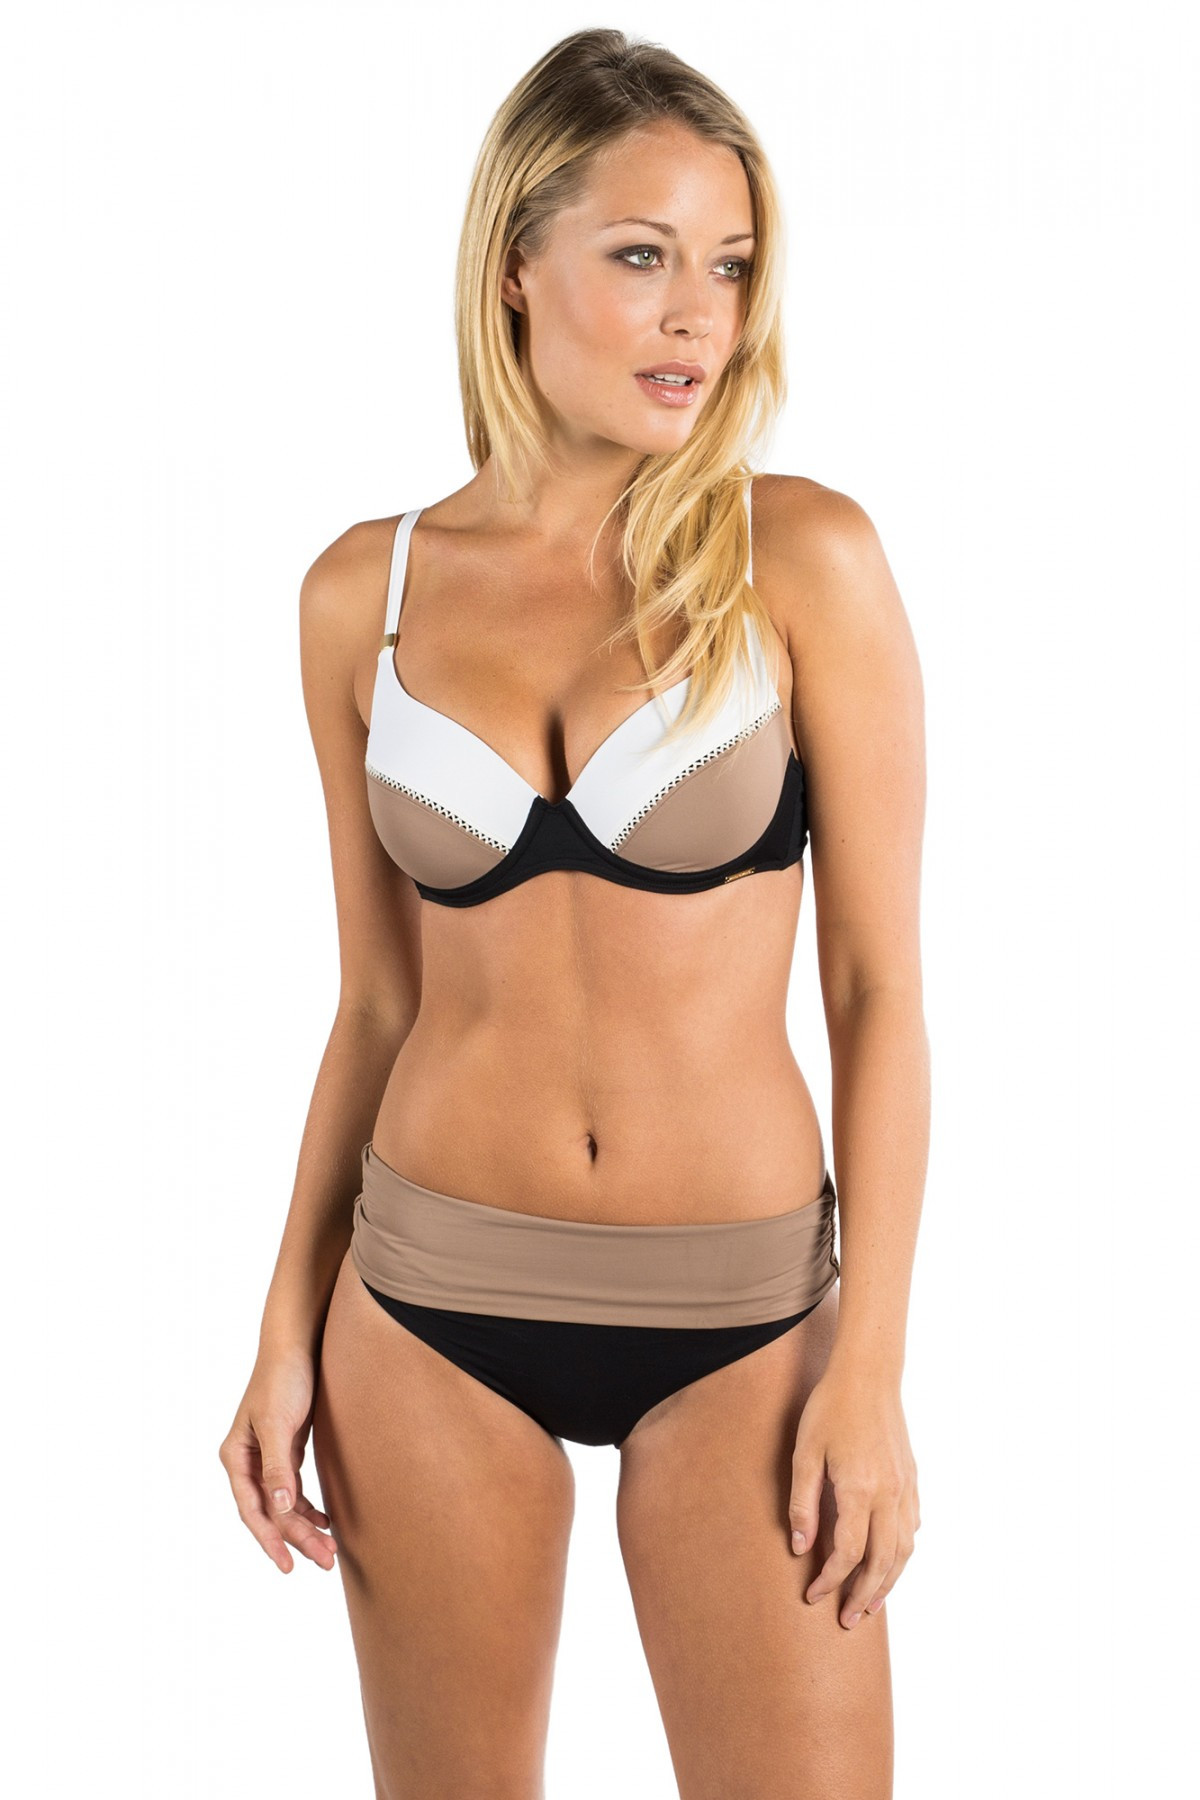 Panos Emporio Carrie-1   Carrie-3 A-C Kupa Multi  74b77646d389e